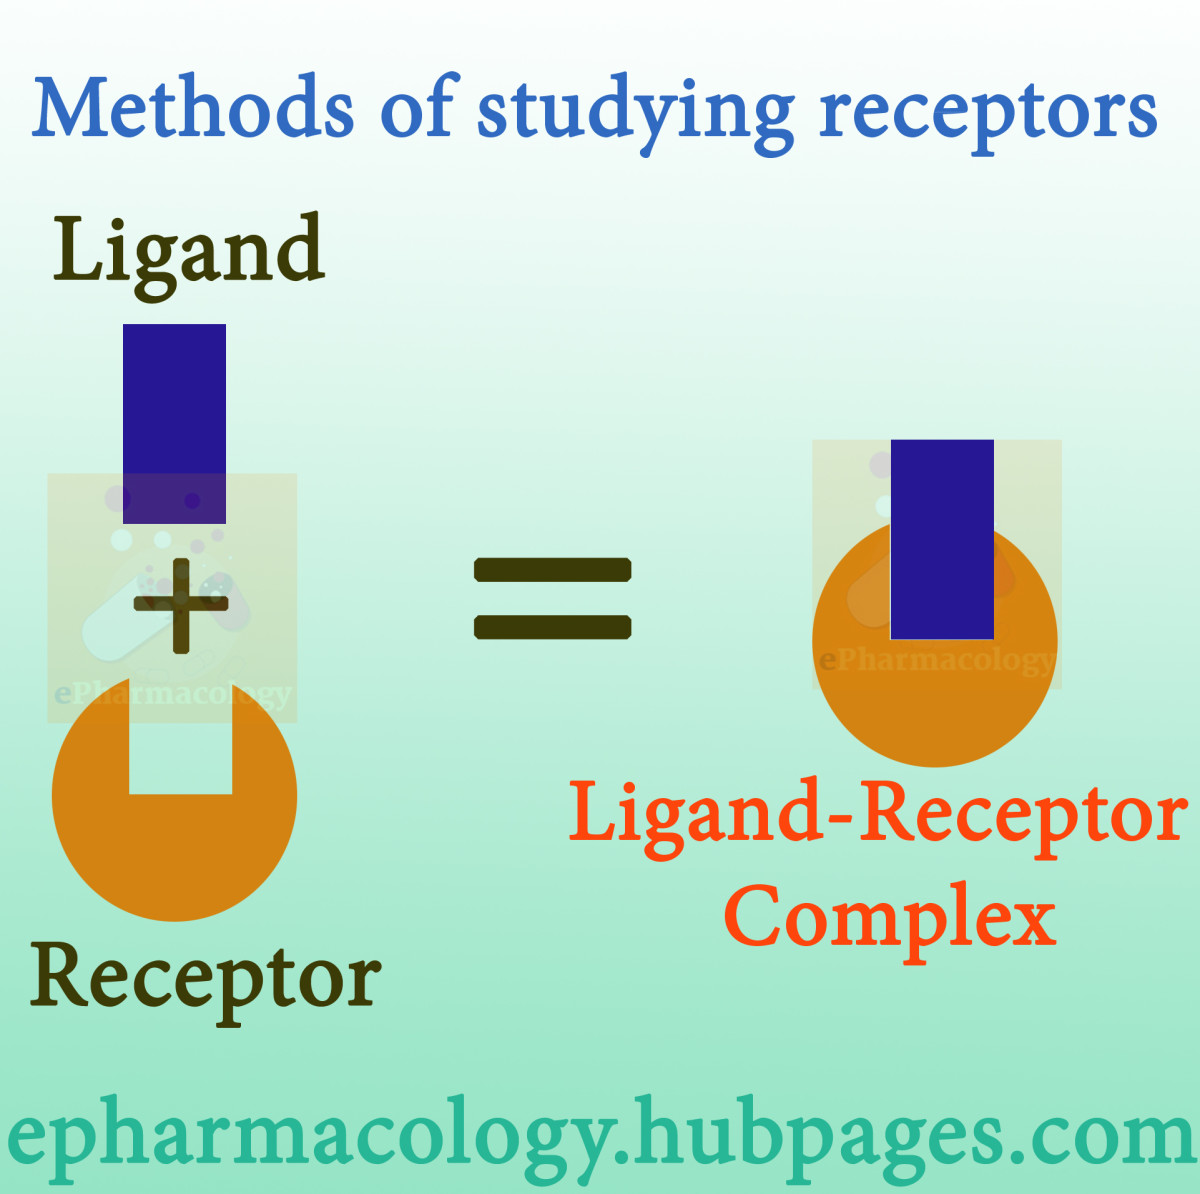 What are the methods of studying receptors?